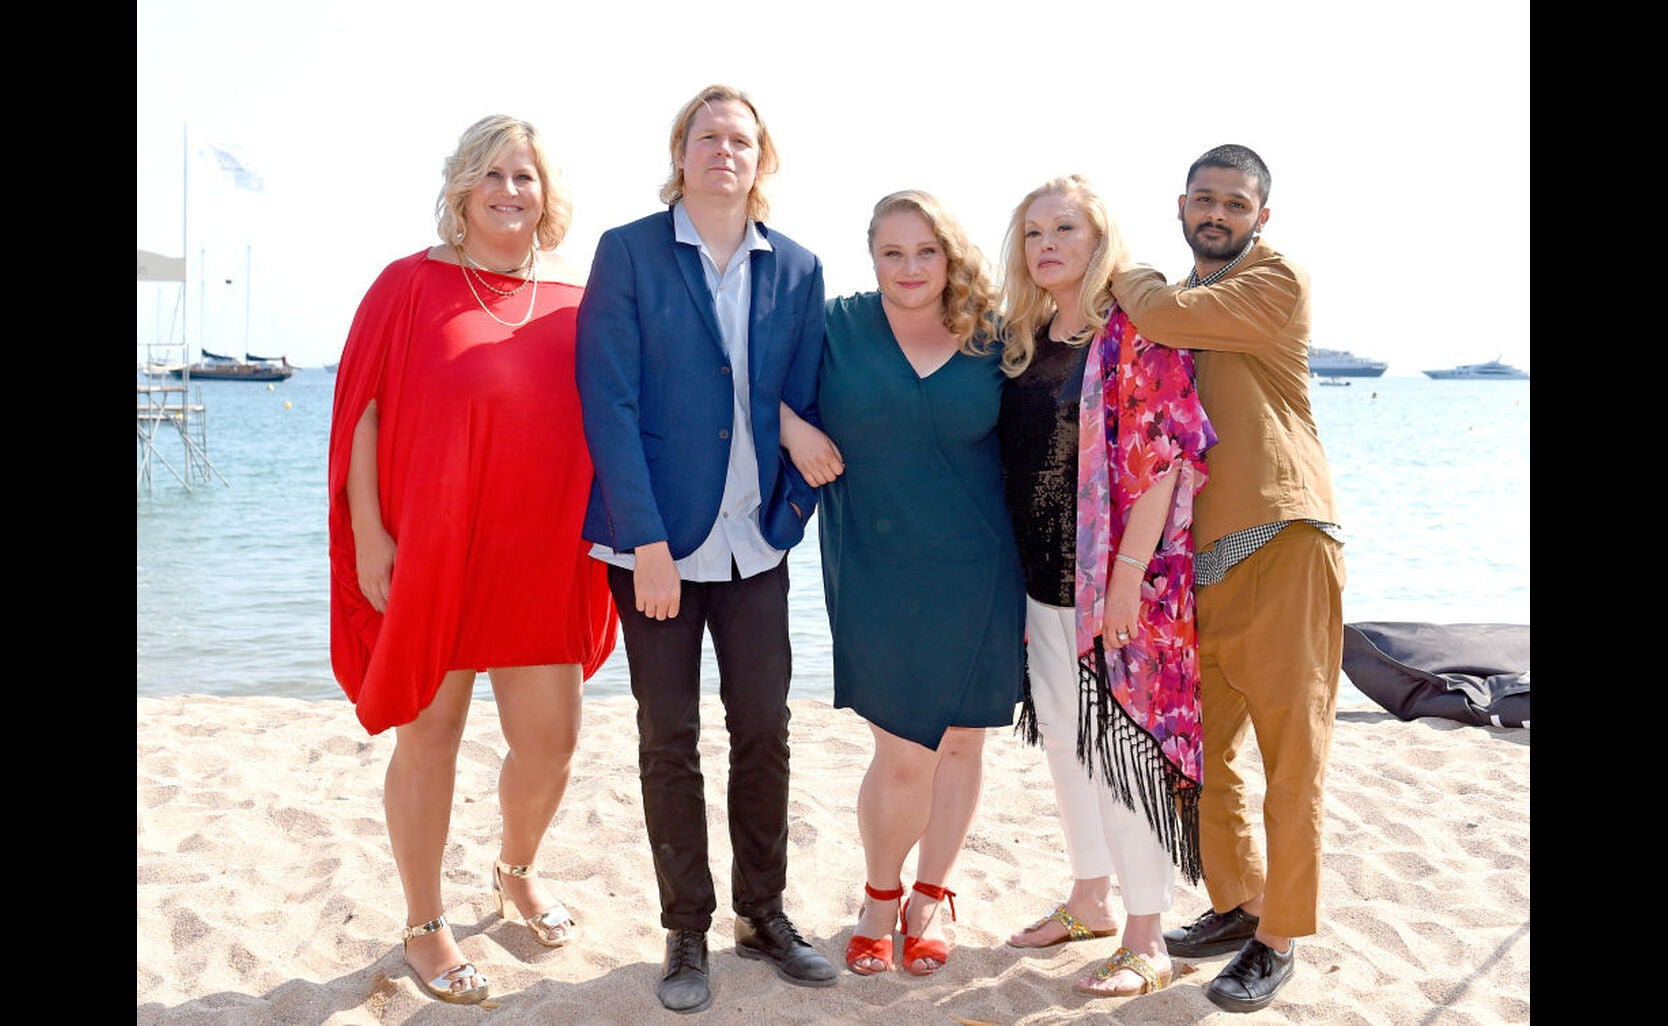 Bridget Everett, Geremy Jasper, Danielle Macdonald, Cathy Moriarty, and Siddharth Dhananjay